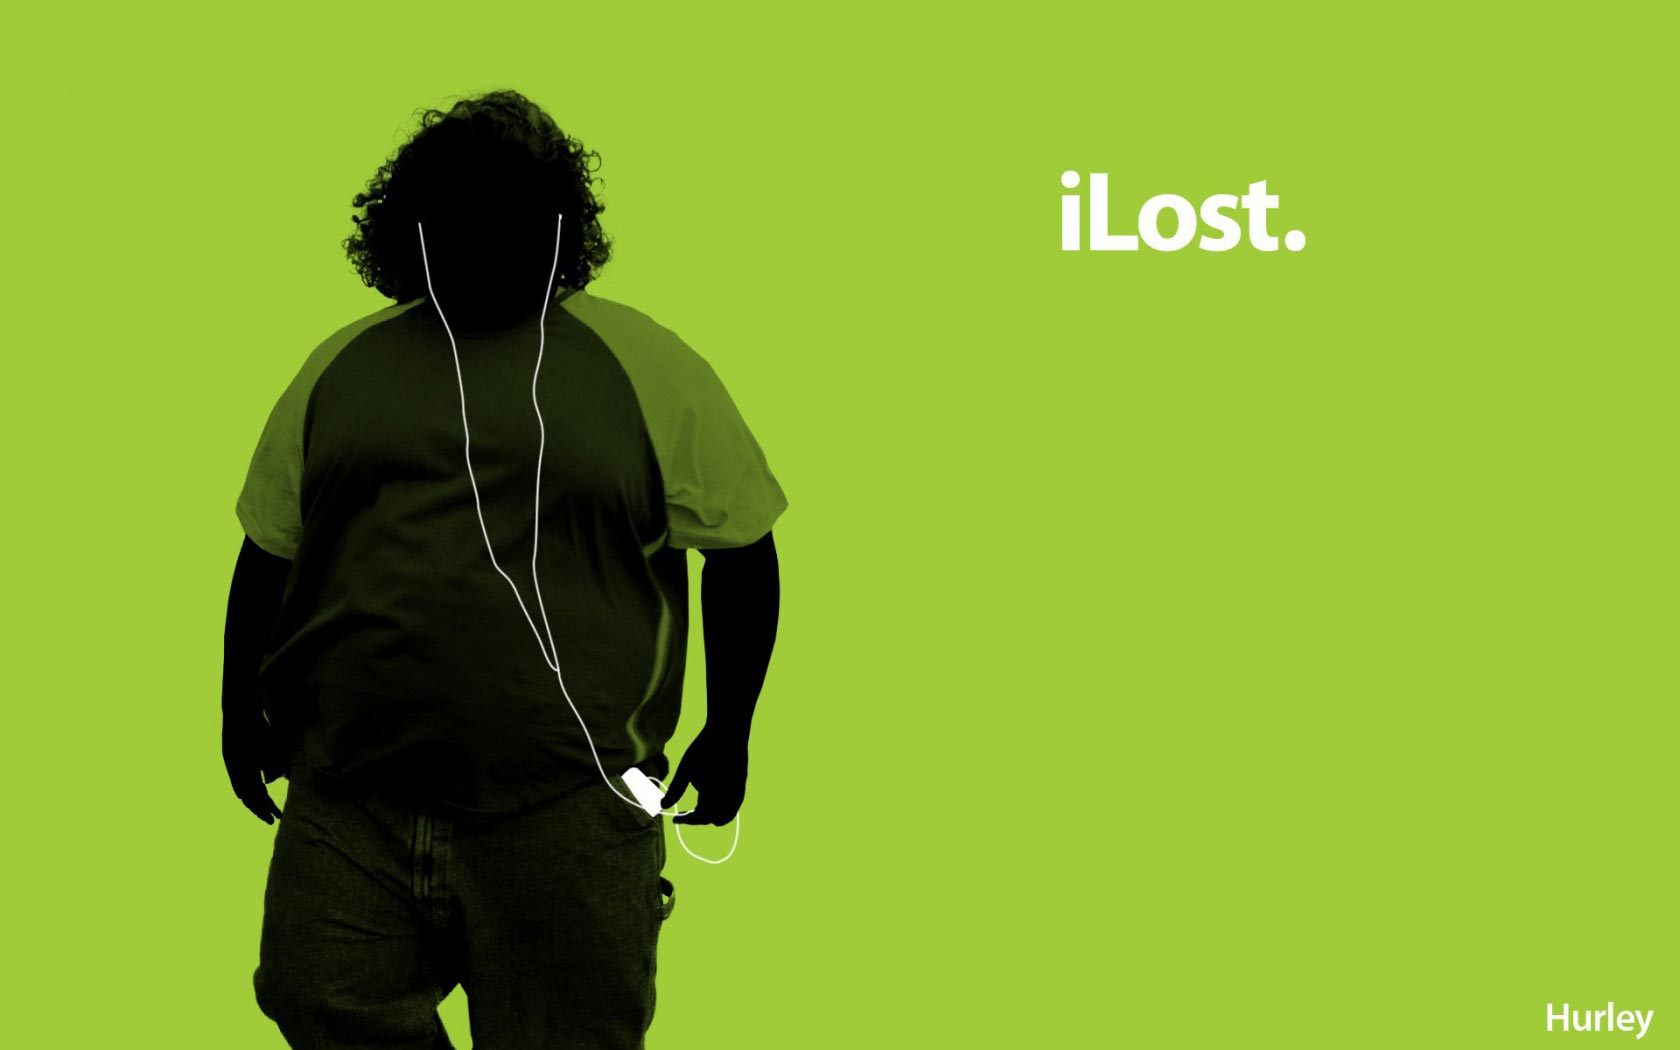 Get Apple iTunes Podcasts Lost hd wallpaper and make this wallpaper 1680x1050